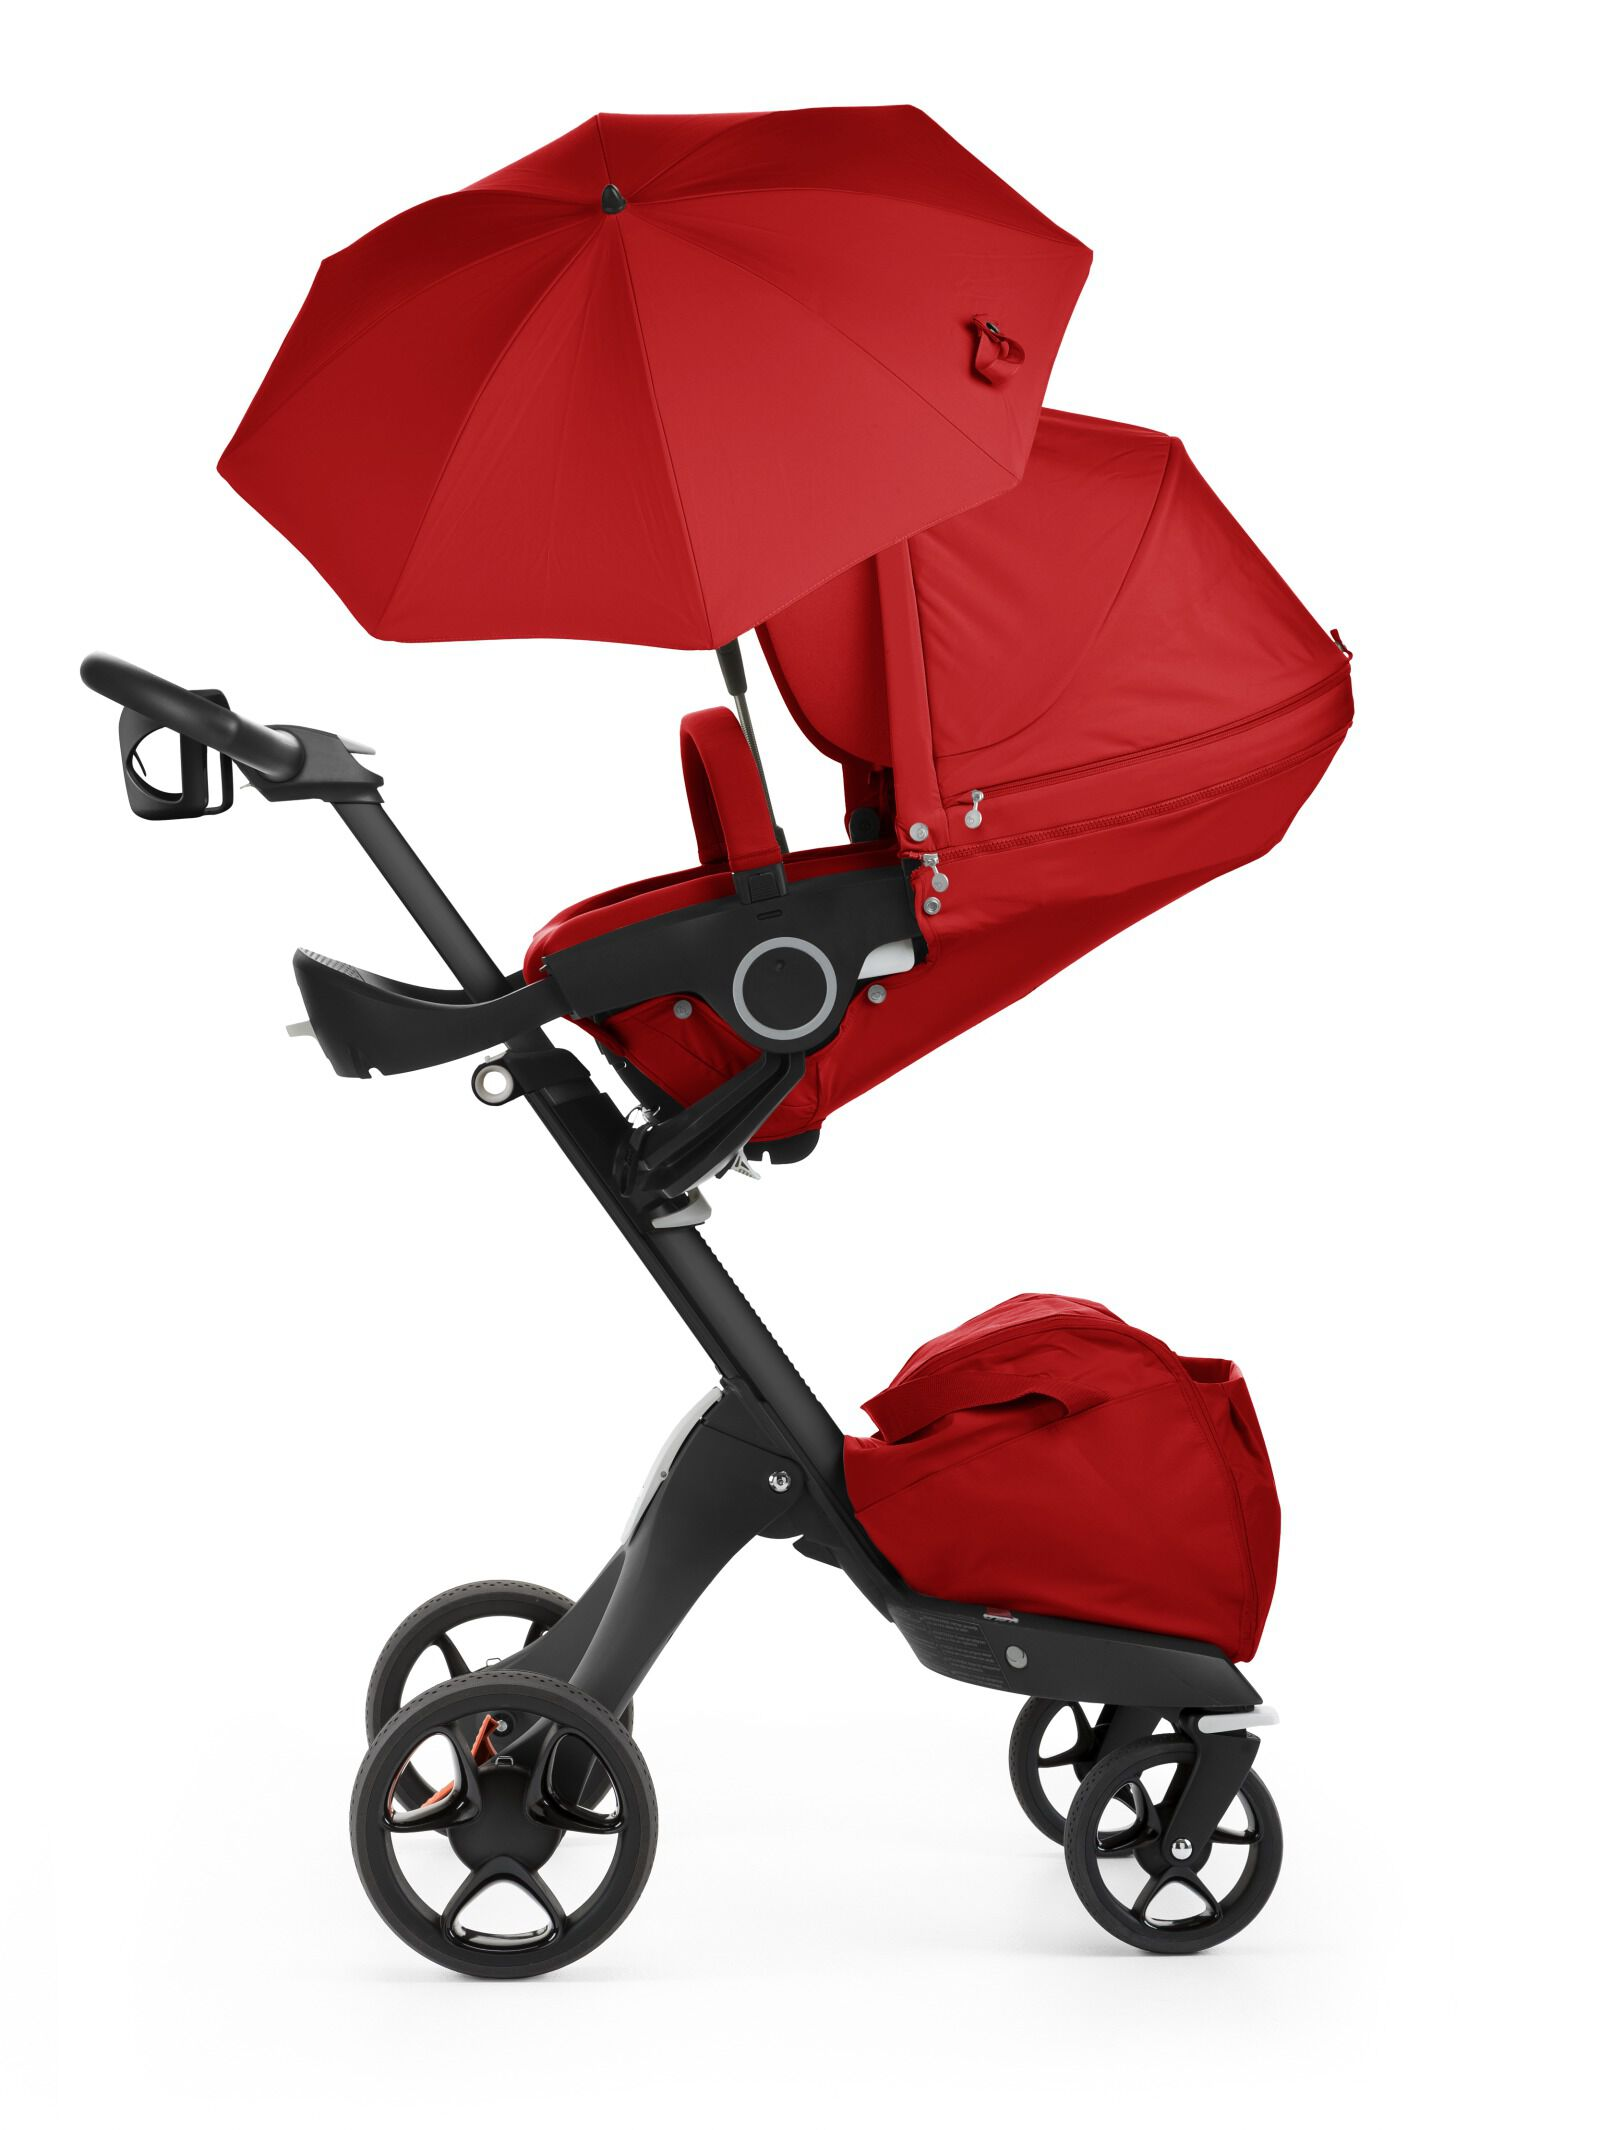 Stokke Scoot Buggy Board For Your Little One Parasol Compatible With Stokke Scoot